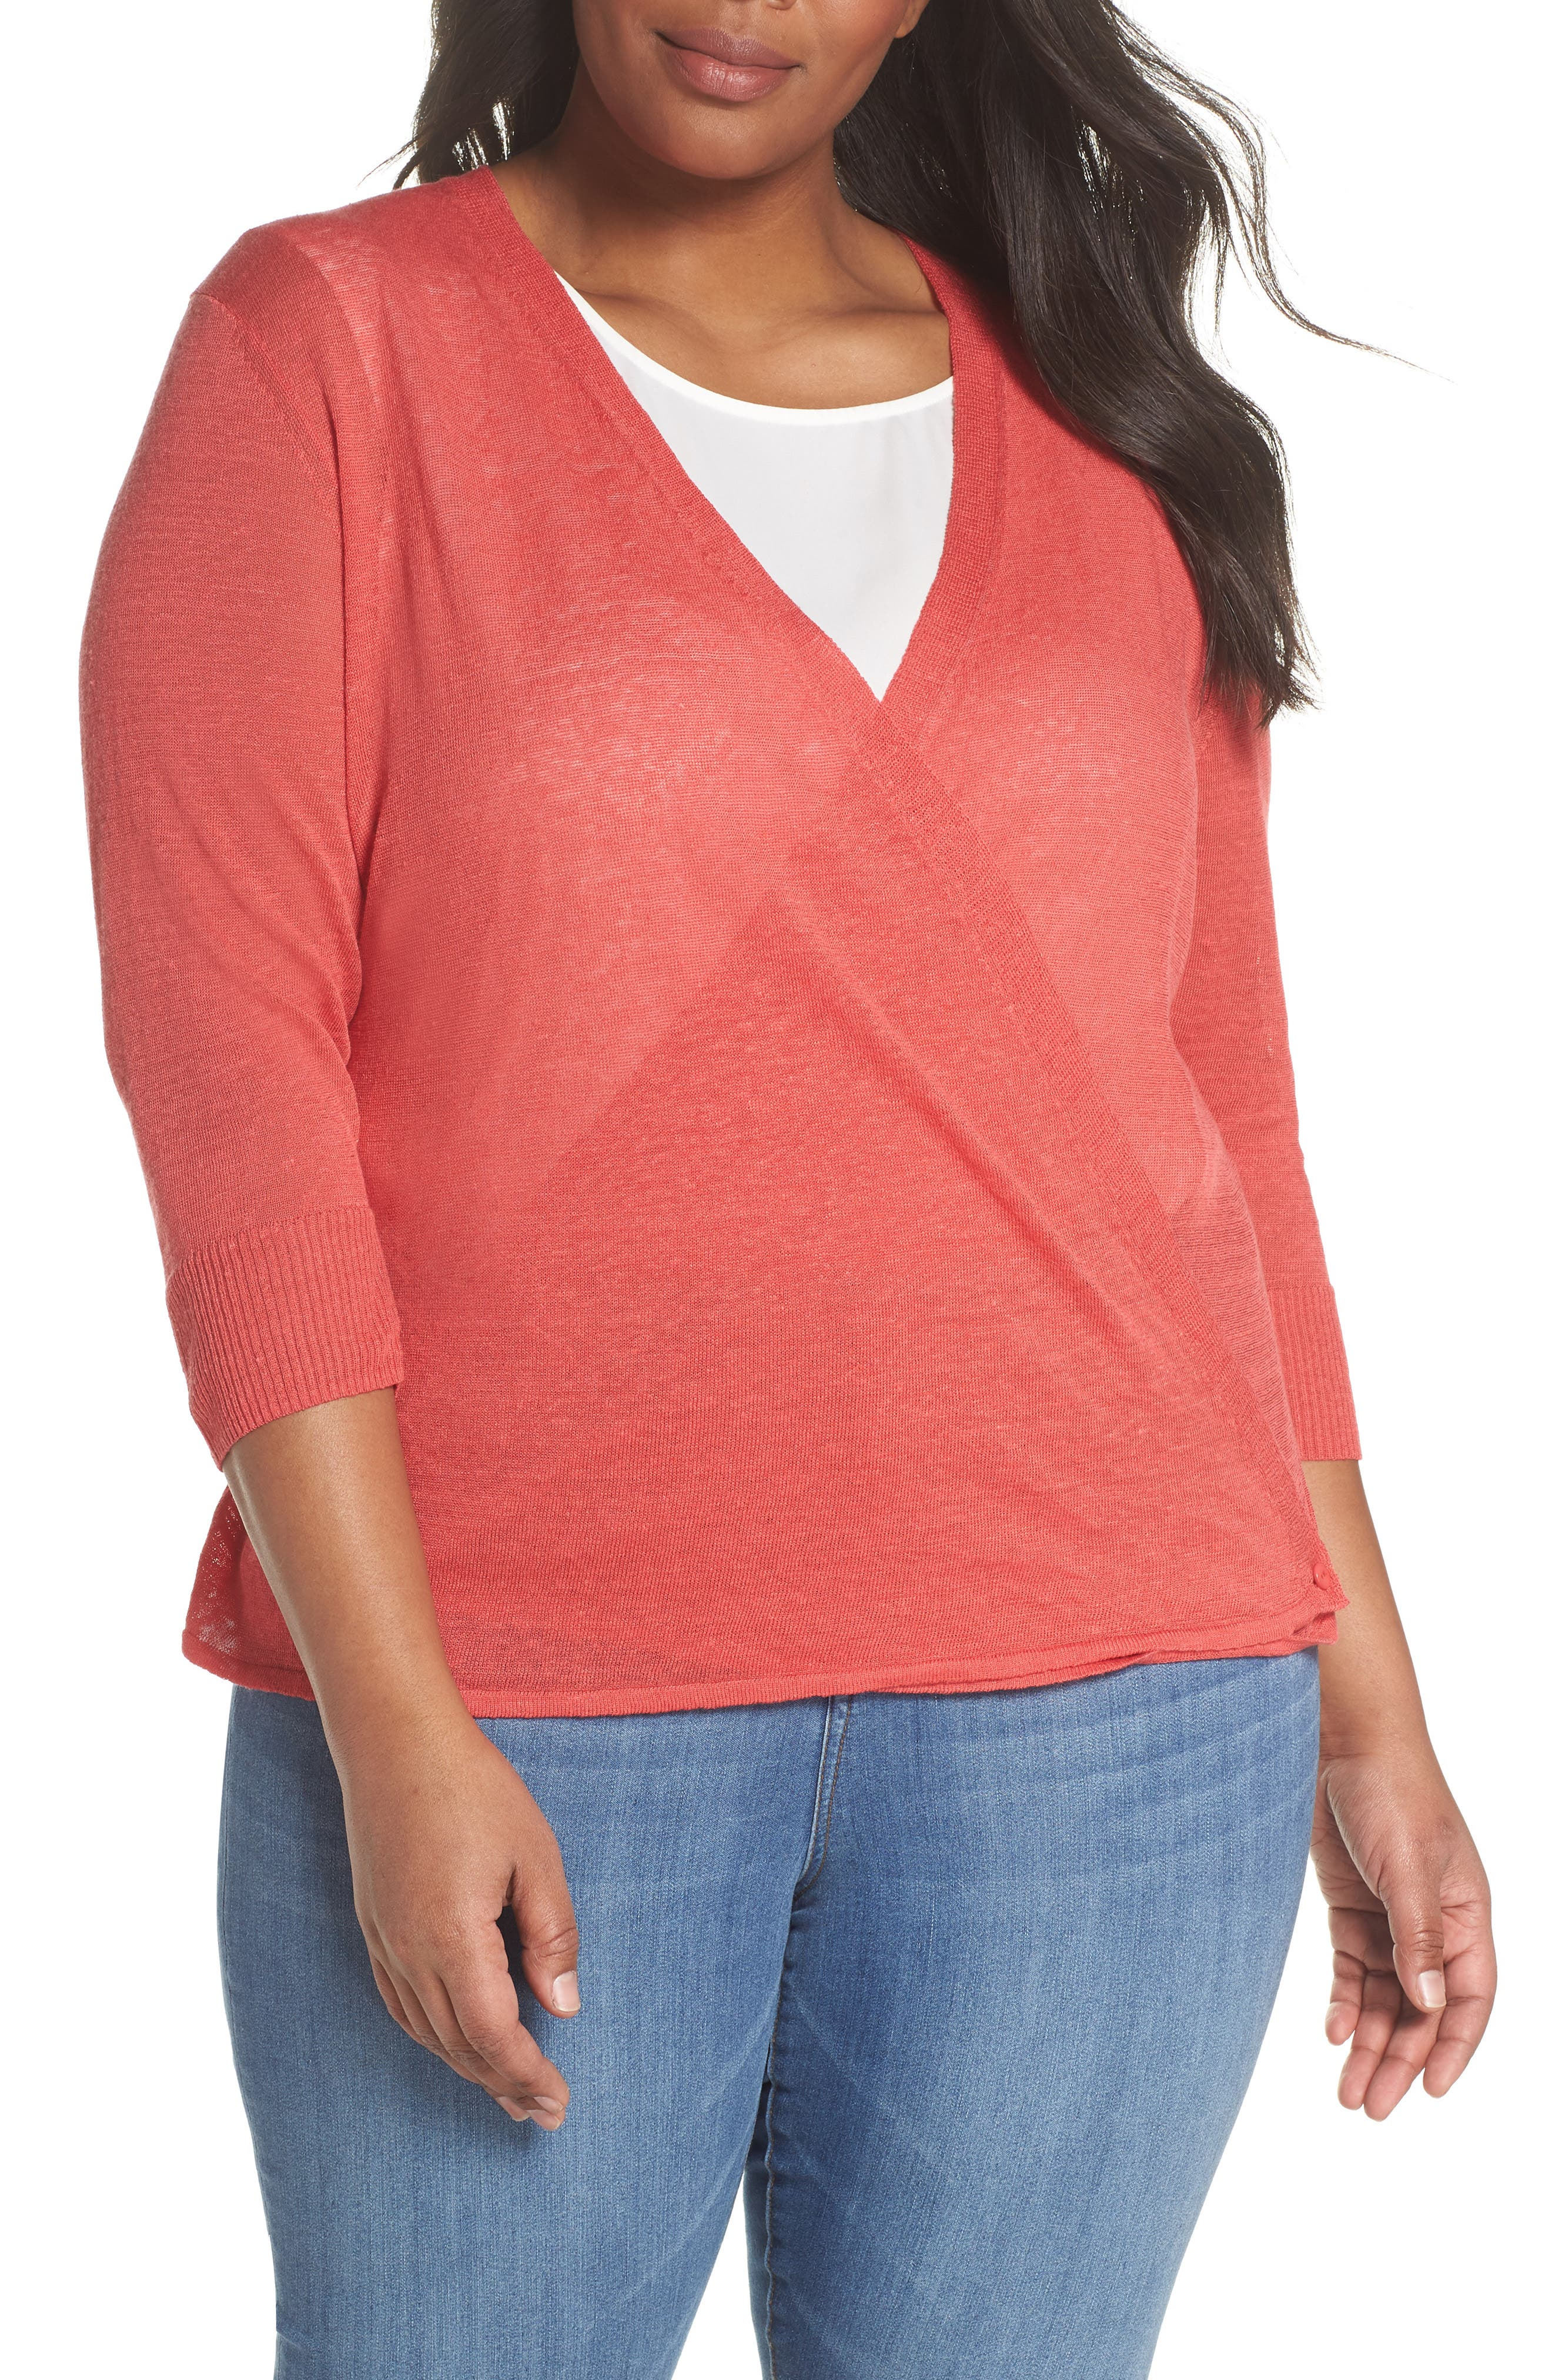 4-Way Convertible Three Quarter Sleeve Cardigan,                             Alternate thumbnail 6, color,                             Spiced Rose